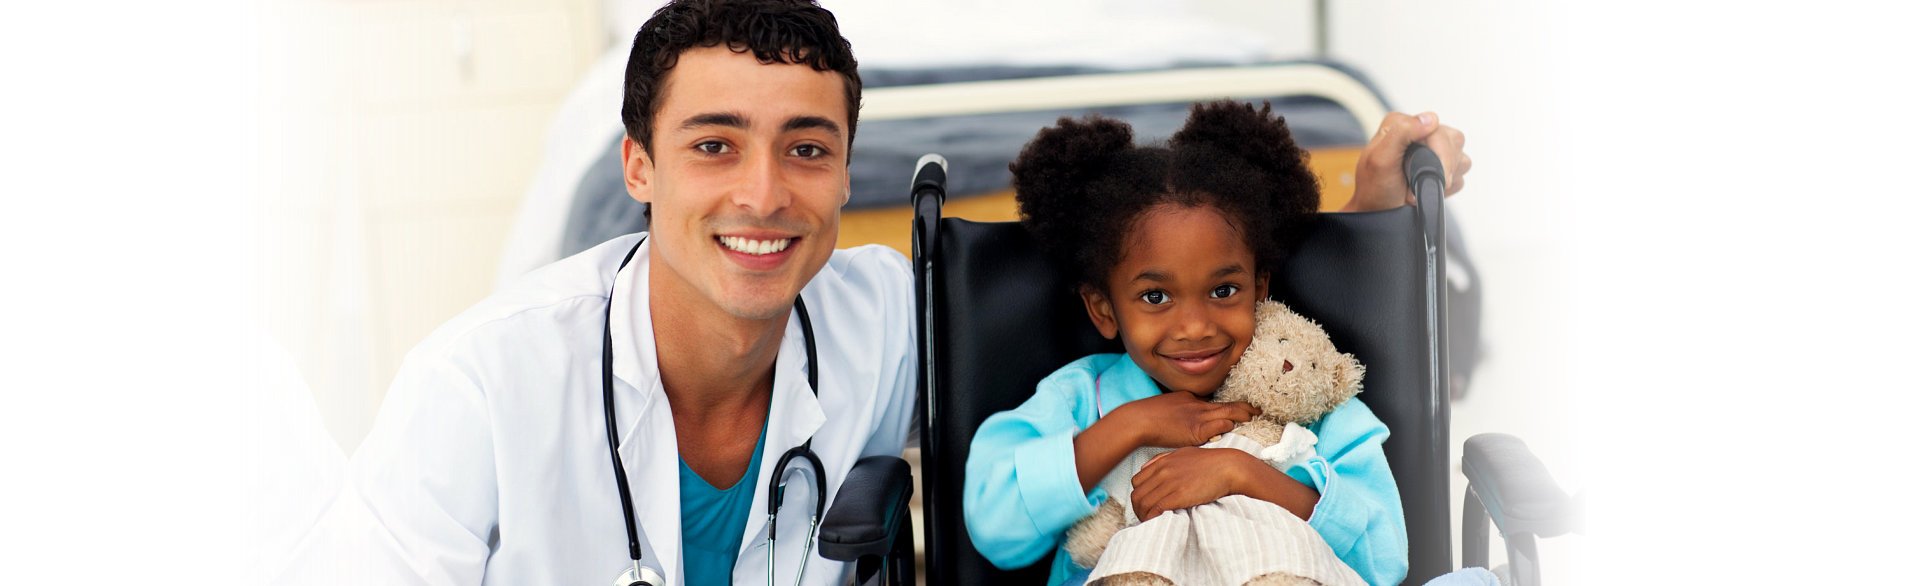 little girl with her toys and her doctor